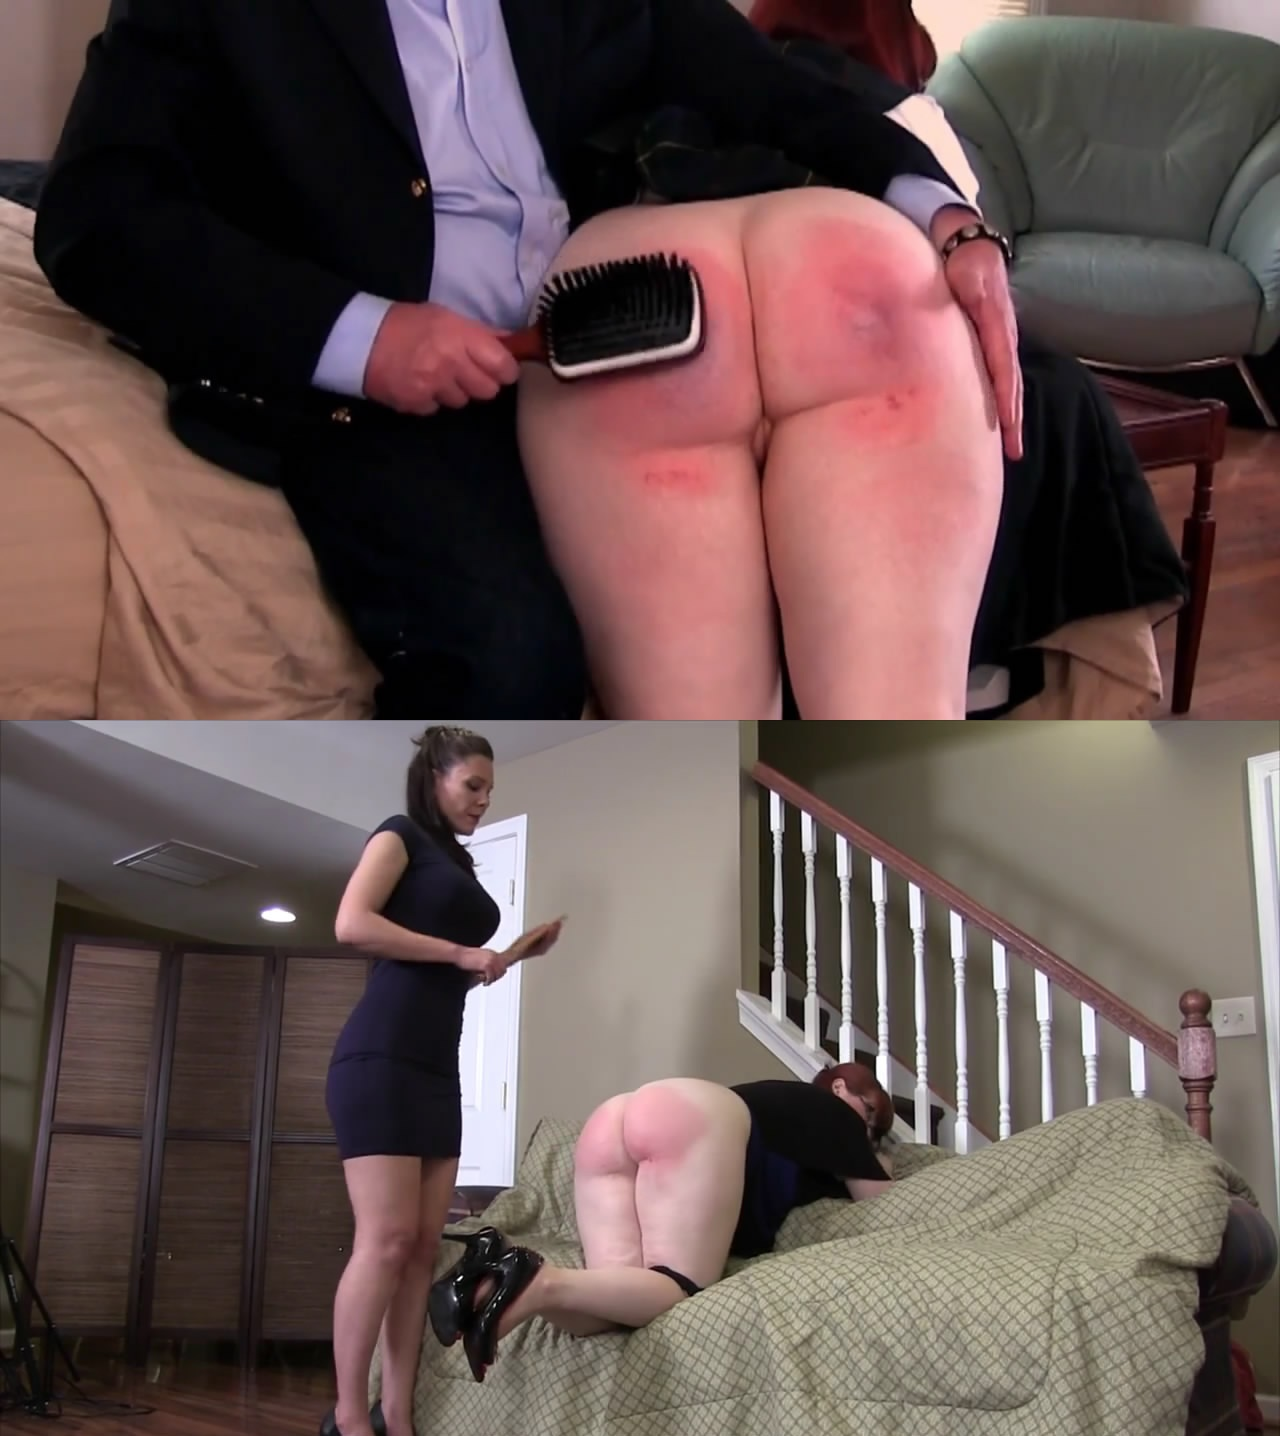 Punished Brats – MP4/HD – Best of Ami Mercury Part 2 of 2